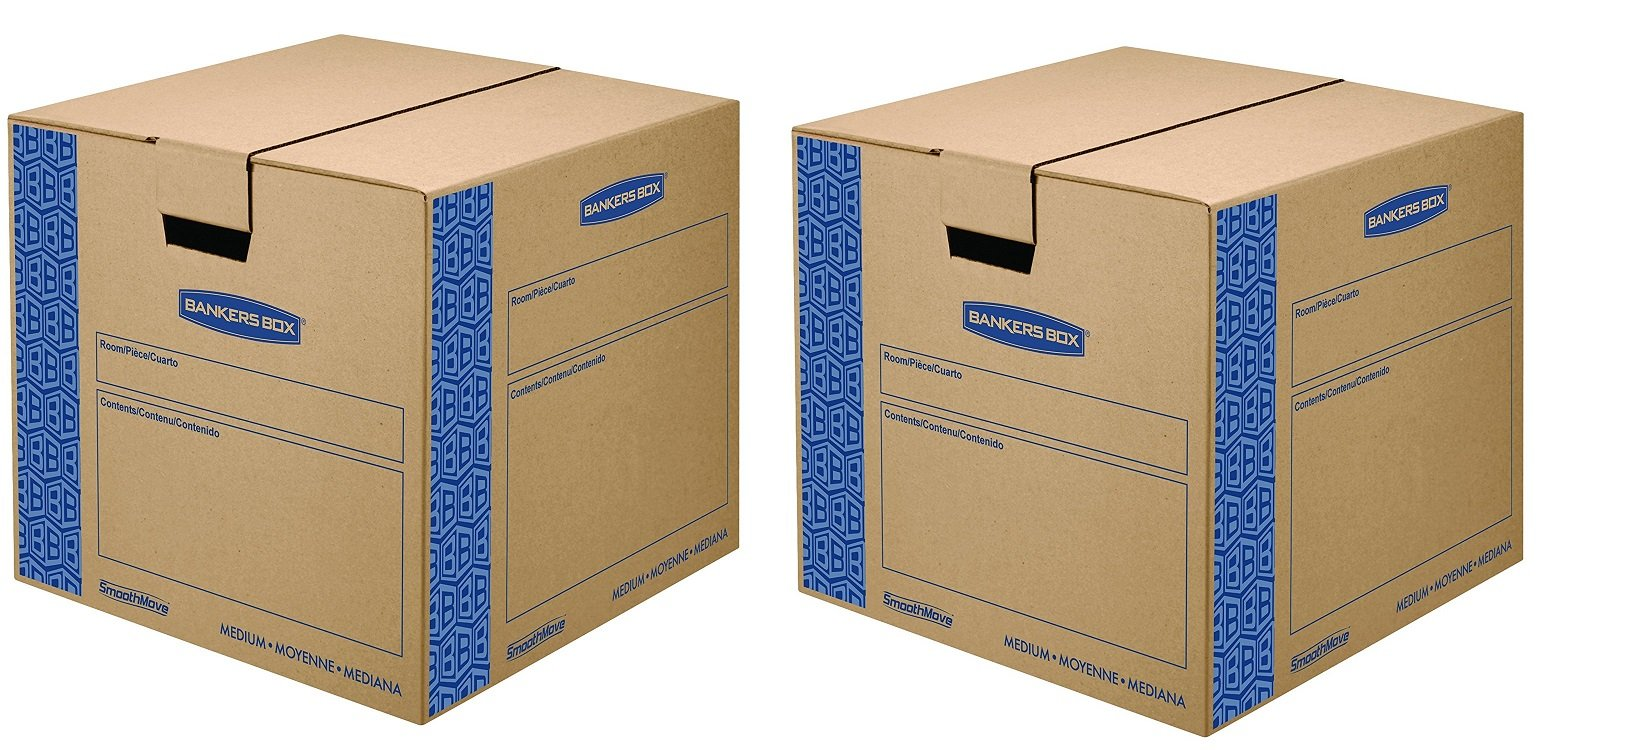 Bankers Box SmoothMove Prime Moving Boxes, Tape-Free and Fast-Fold Assembly, Medium, 18 x 18 x 16 Inches, 8 Pack (0062801) (2-(8 Pack))